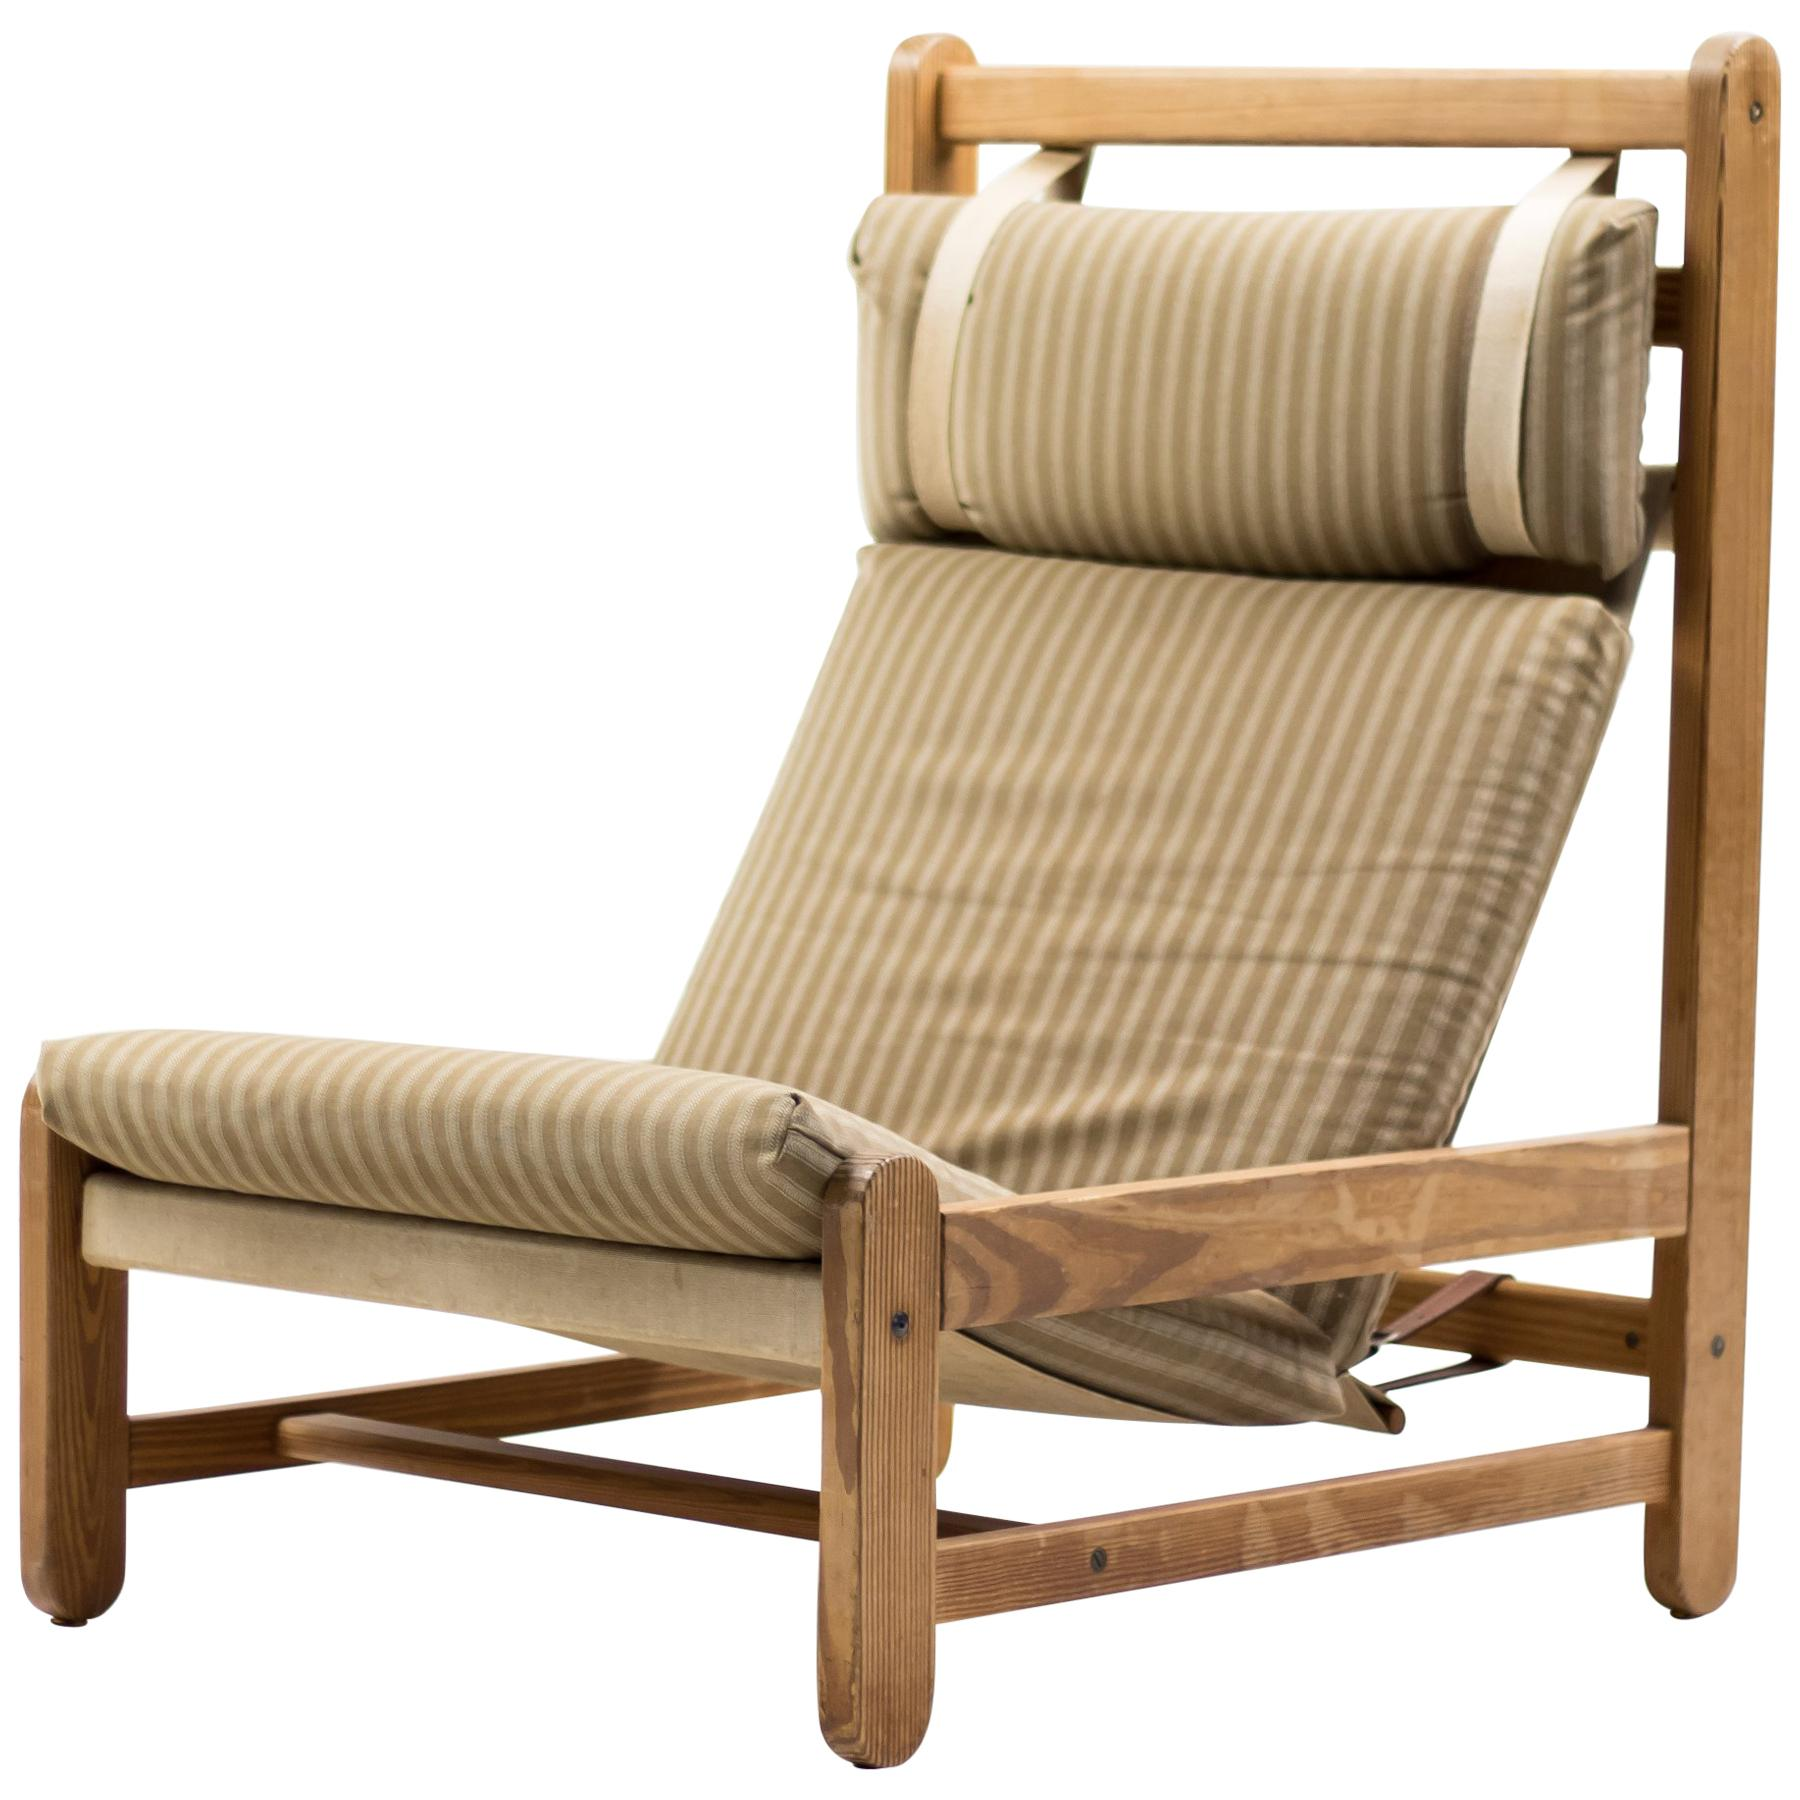 Scandinavian Chair Scandinavian Architectural Lounge Chair